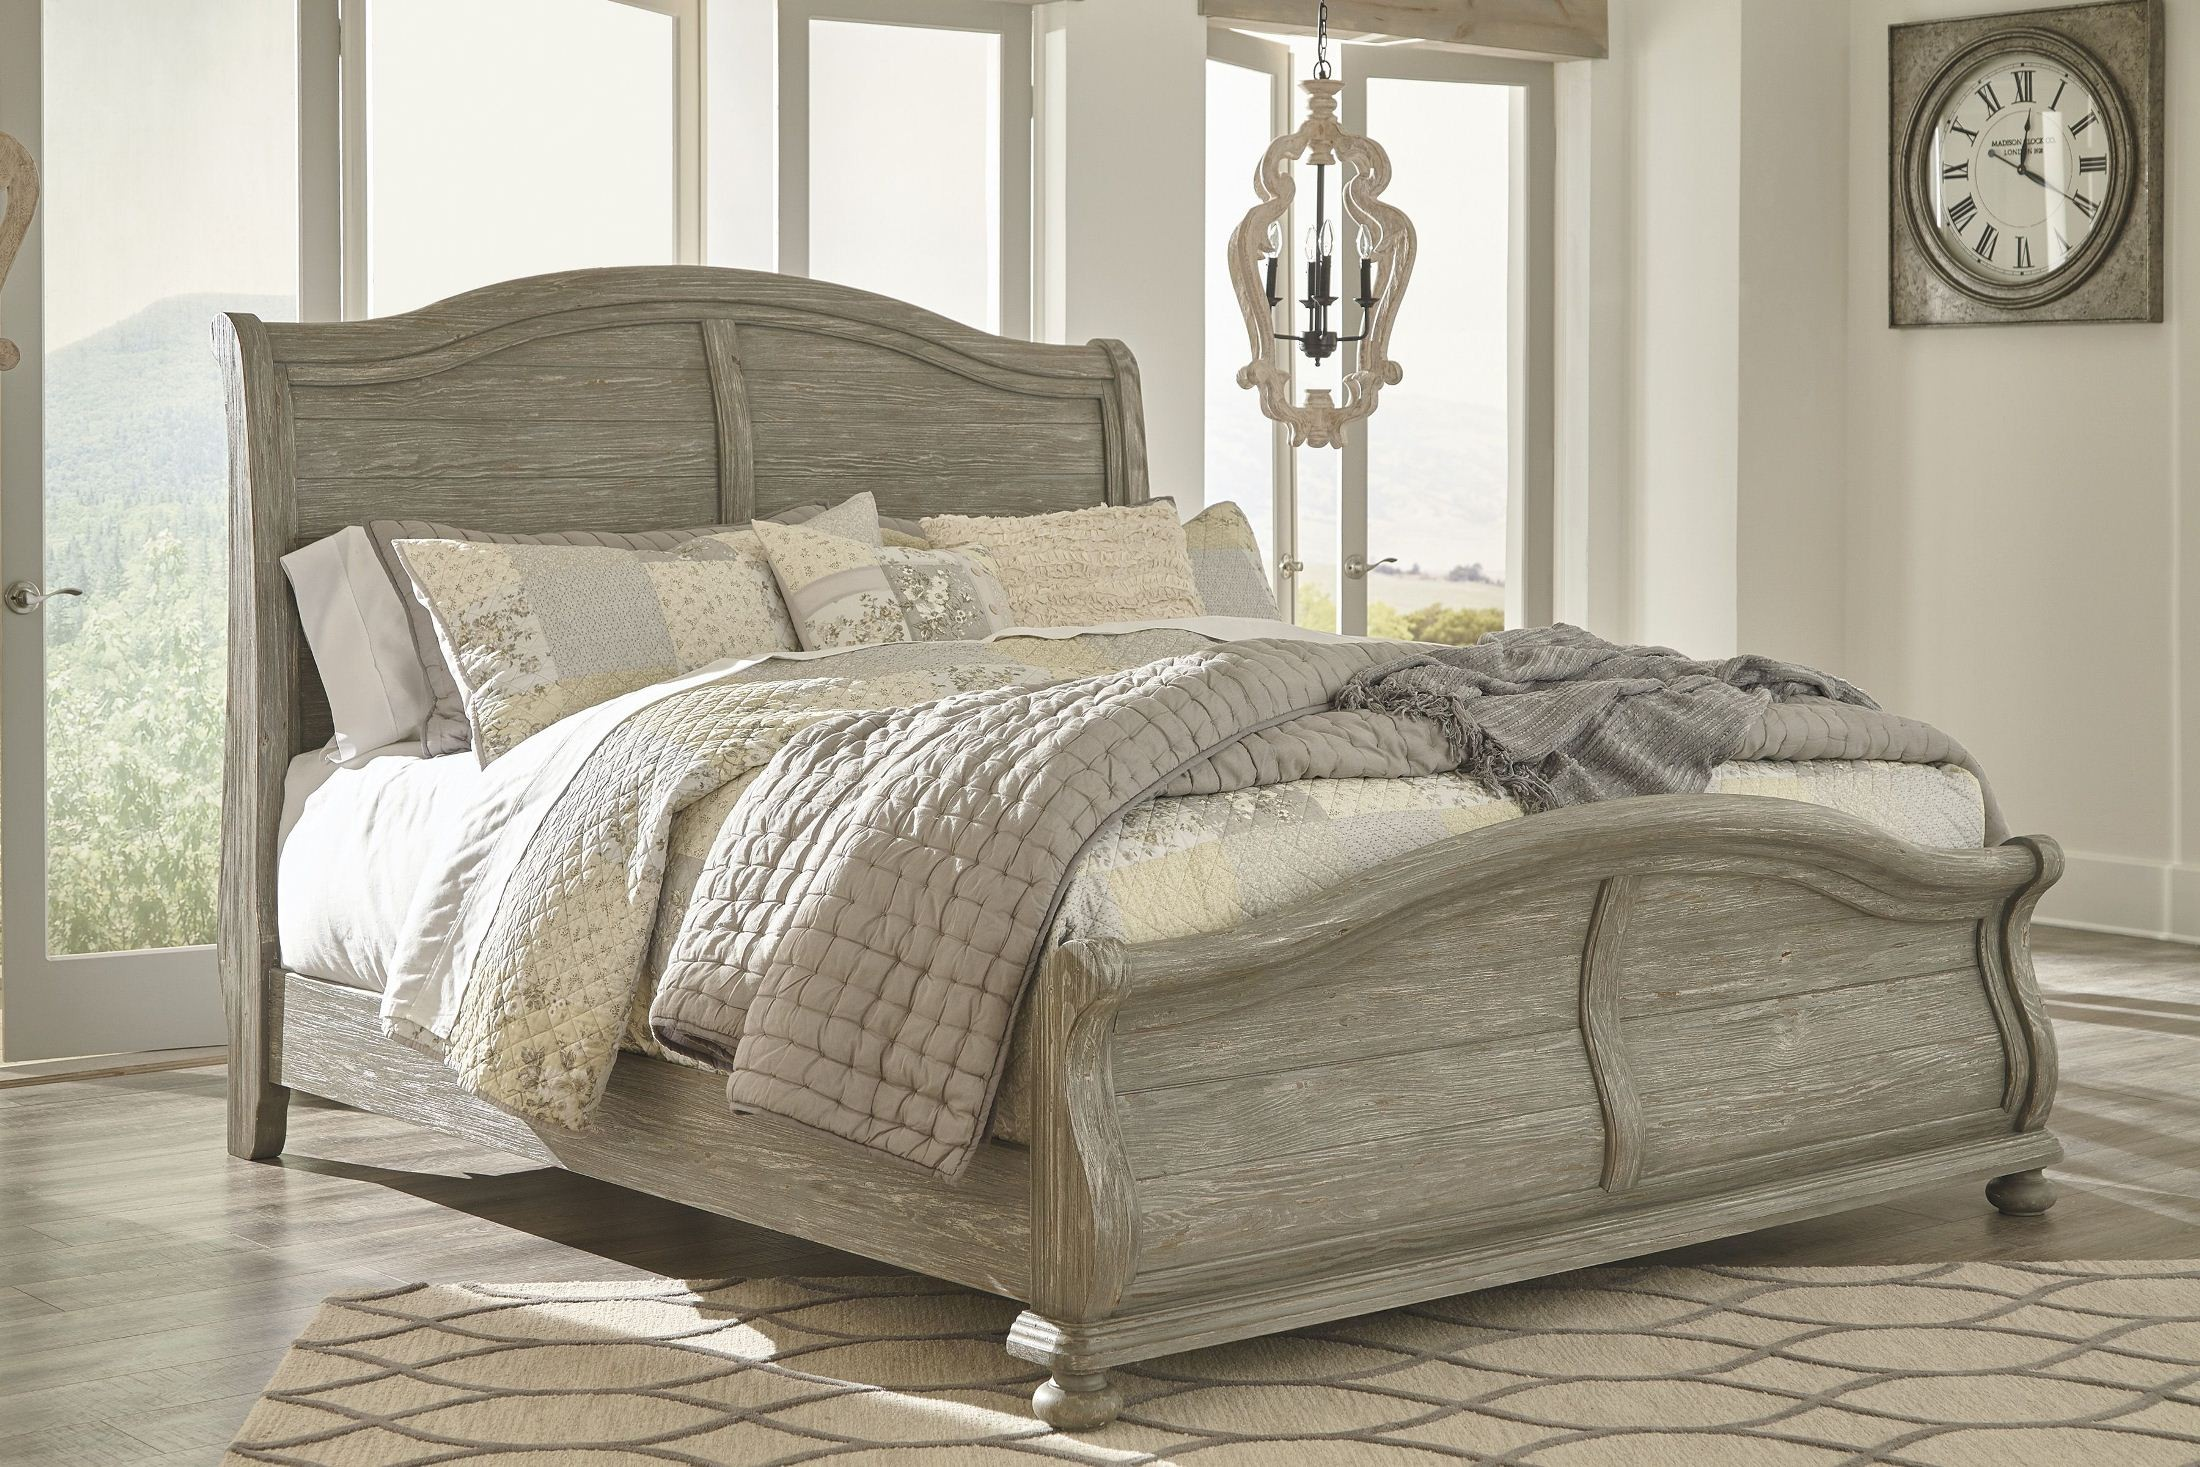 Marleny Gray And Whitewash Sleigh Bedroom Set From Ashley Coleman Furniture